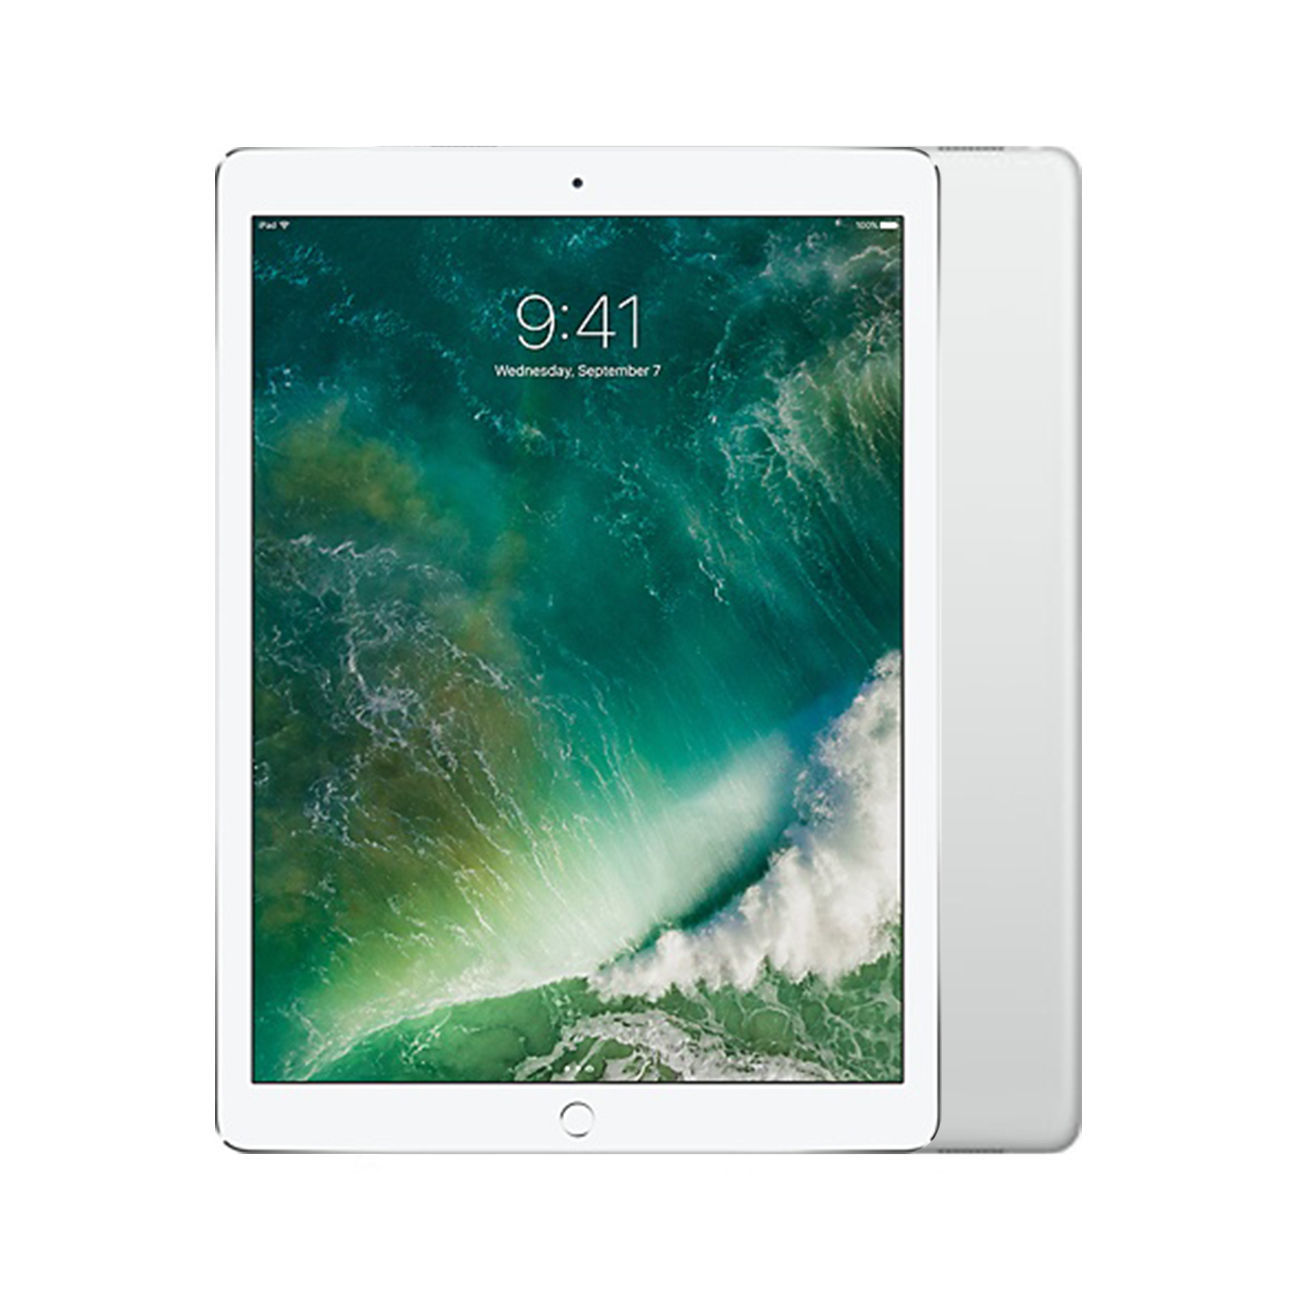 Apple iPad Pro 9.7 Wi-Fi + Cellular [32GB] [Silver] [Excellent] [12M]